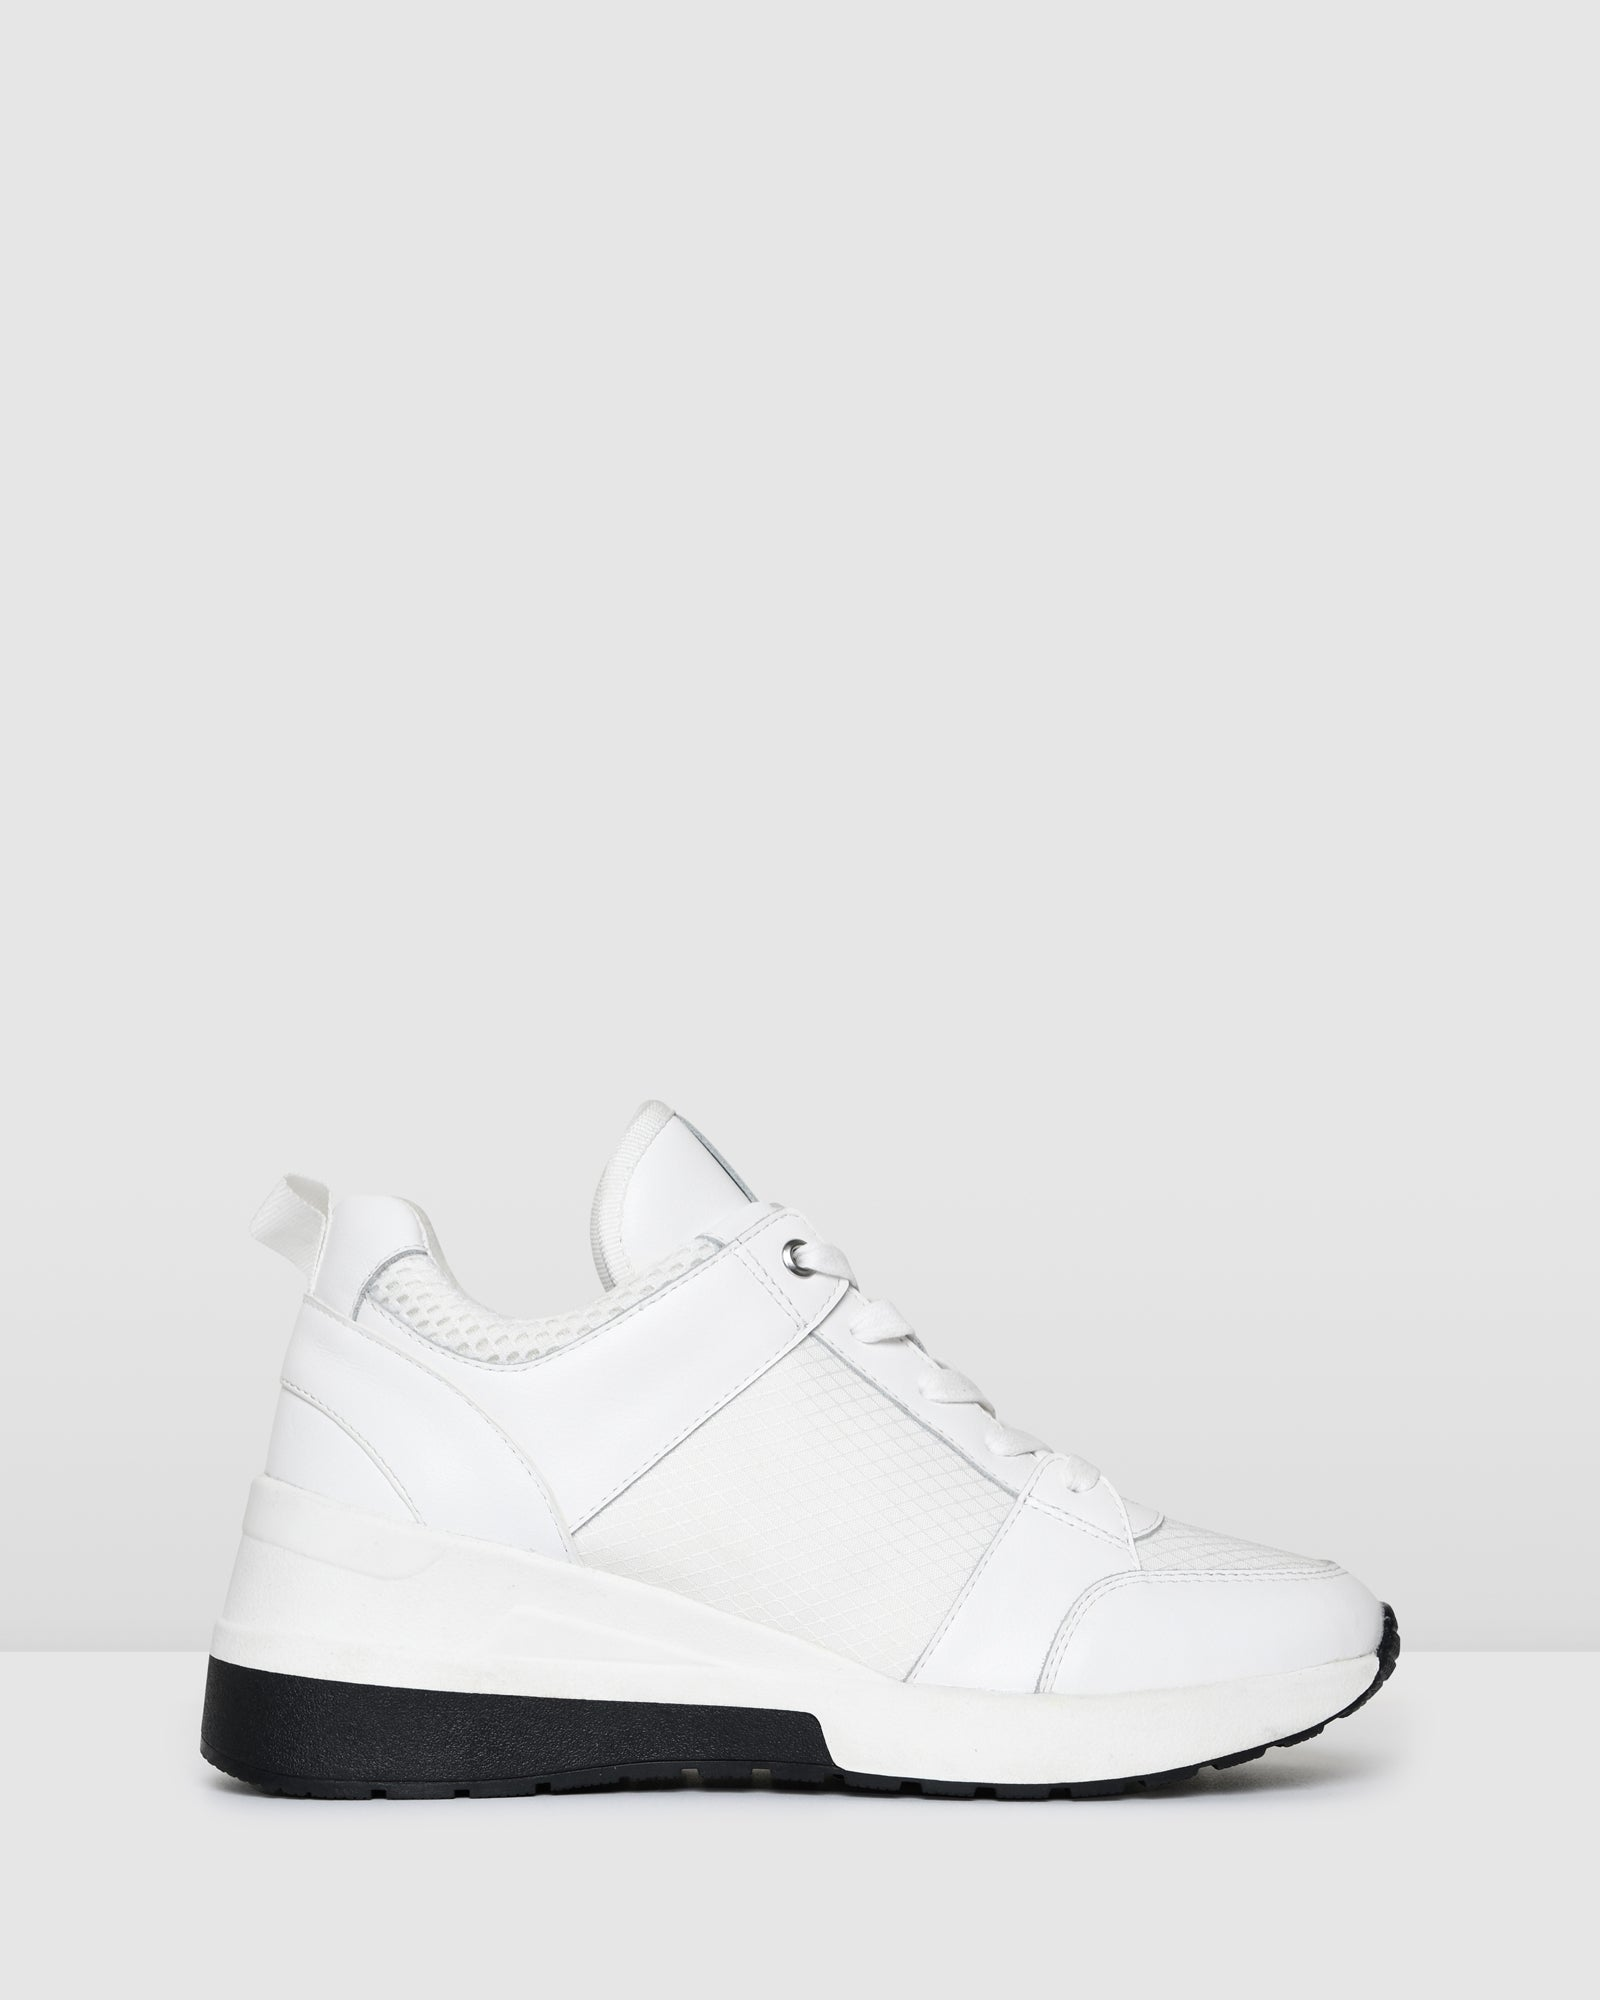 UPROAR SNEAKERS WHITE LEATHER